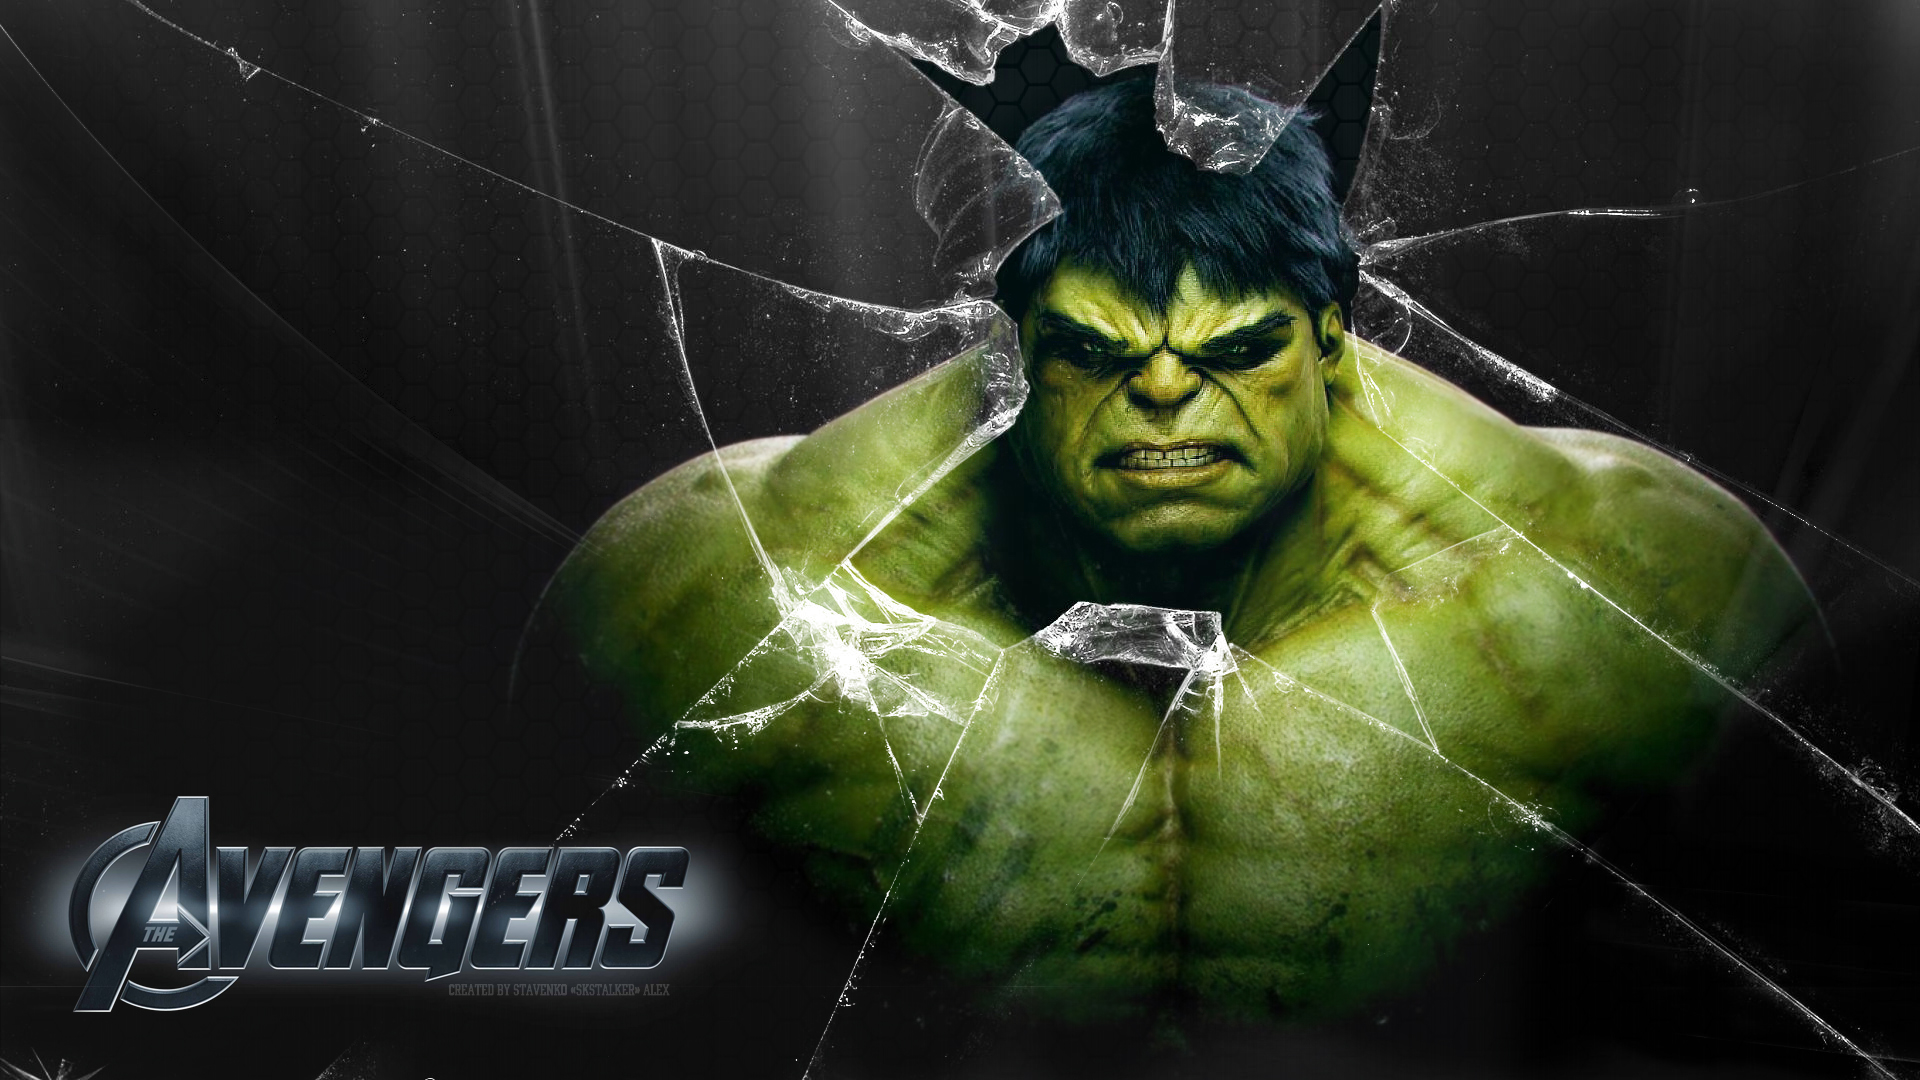 Rampage Movie Hd Wallpapers Download 1080p: Avengers HD Wallpapers 1080p